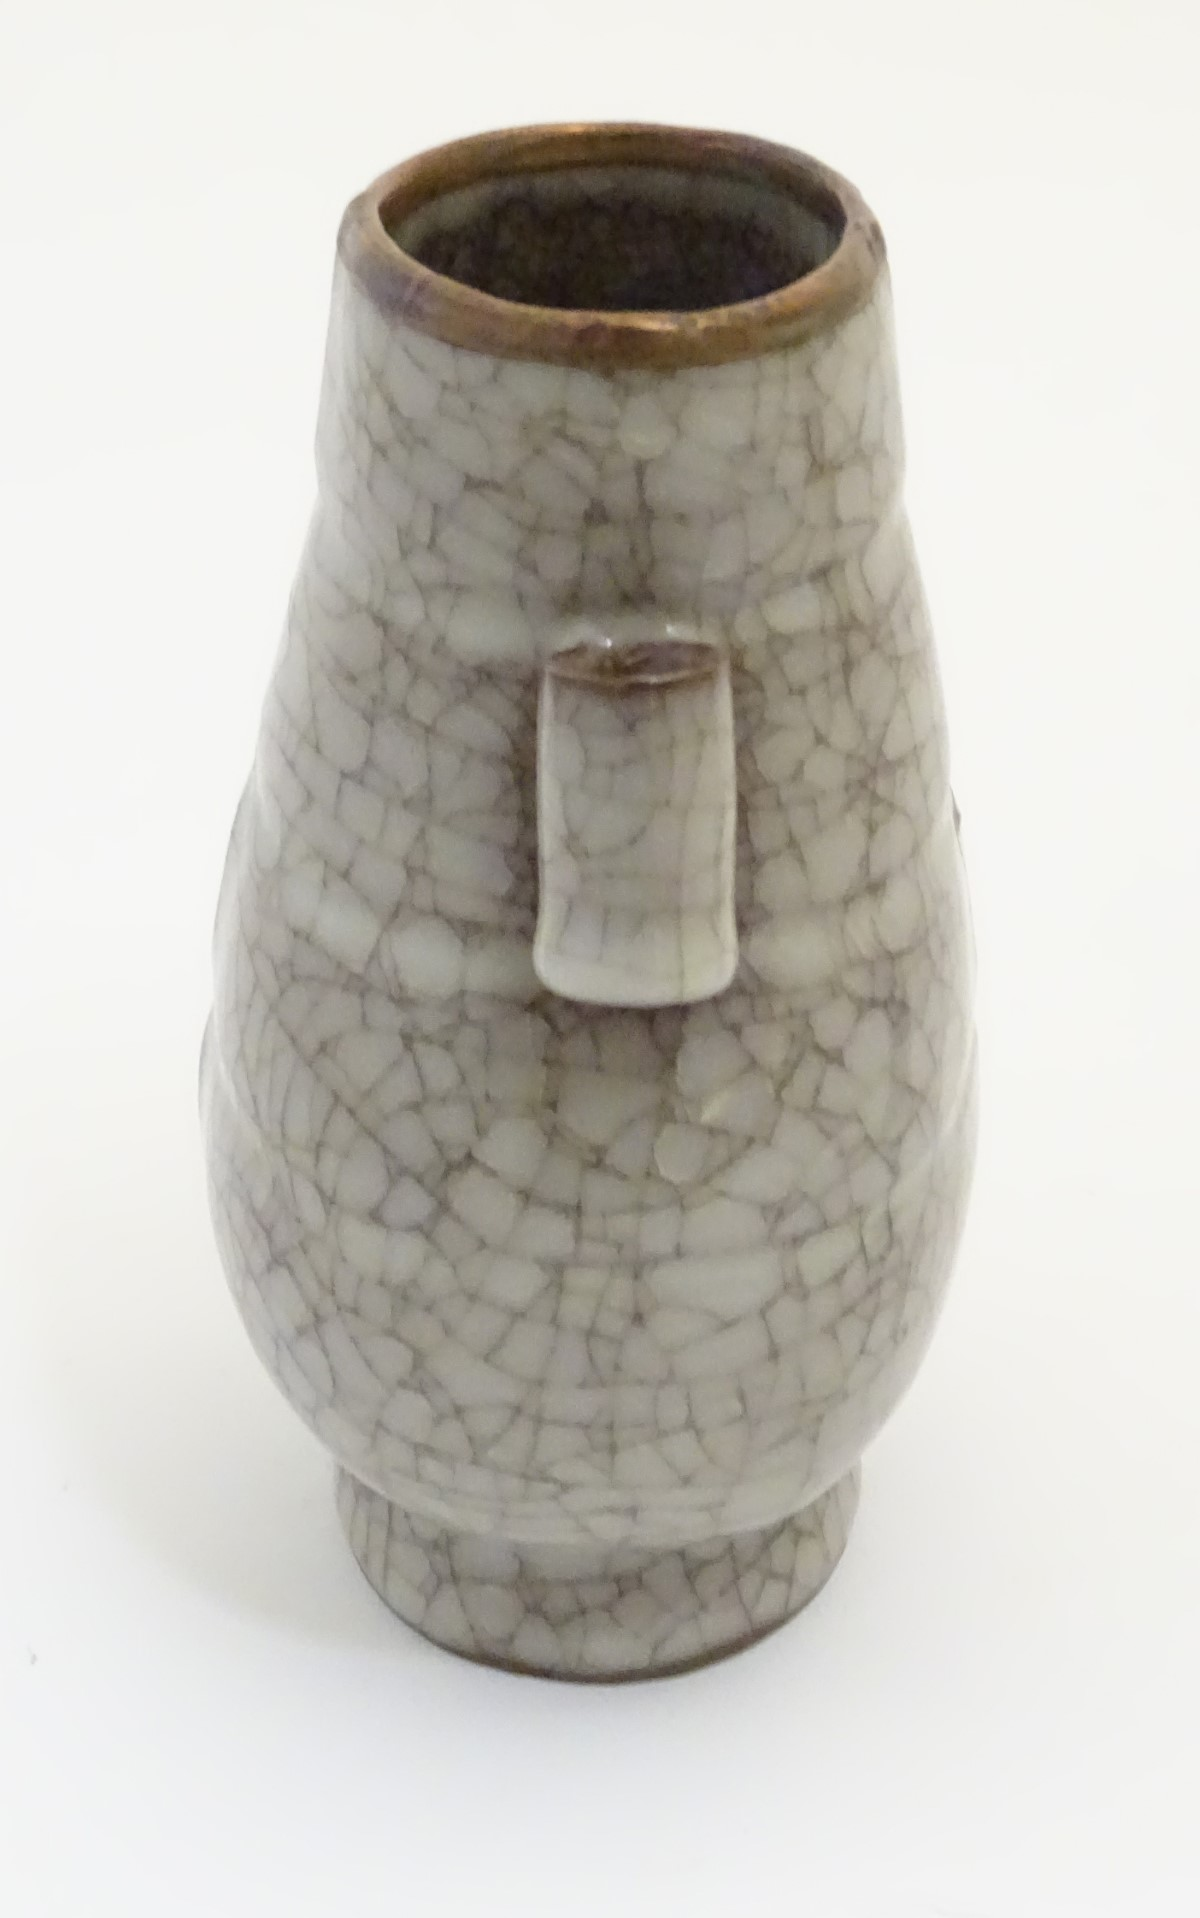 Lot 16 - A Chinese Ge vase with a crackle glaze, twin tubular handles and a copper rim. Approx.